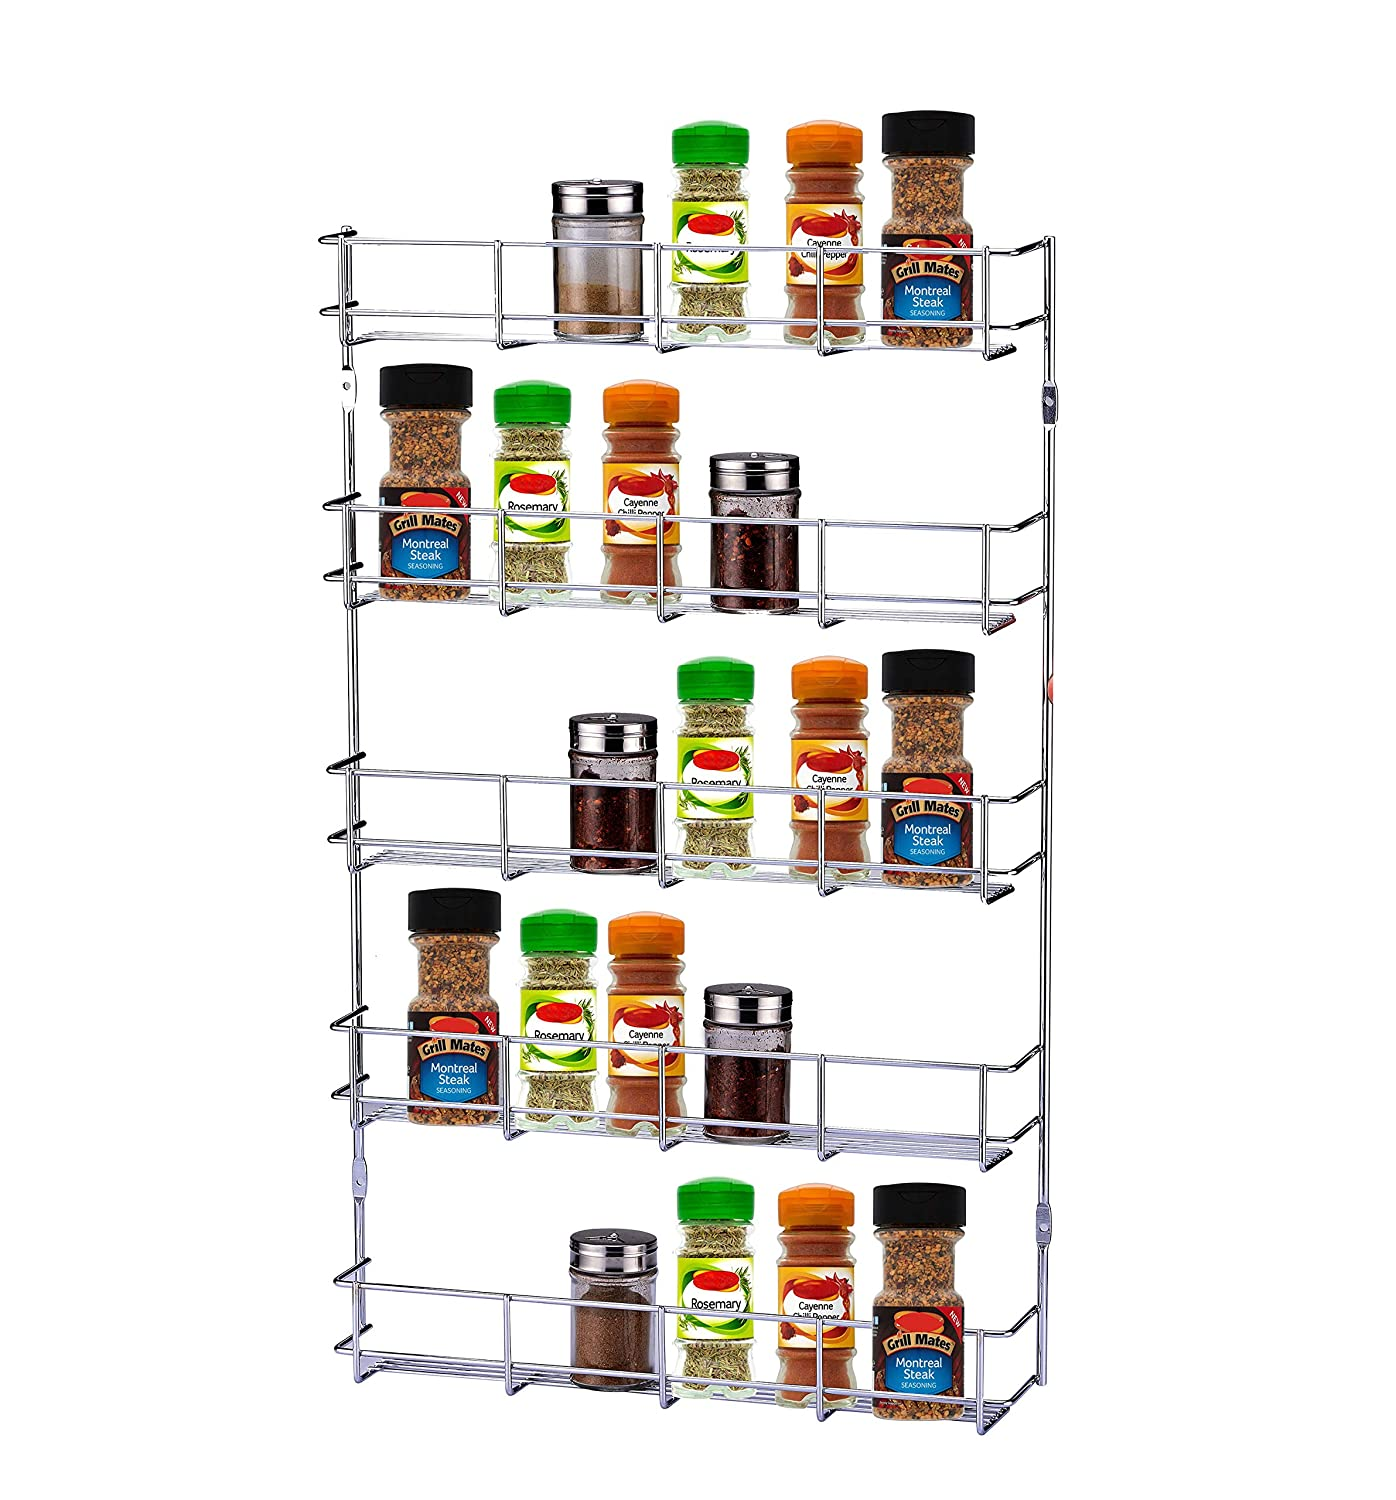 EXERZ EXSR004-4 Herb and Spice Rack 4 Tiers – Kitchen Shelf Organiser for Jars, Perfect Space Saving and Storage. Can be Wall mountable or Cupboard Door Fitting (Fixings Included in The Package). Exerz Ltd